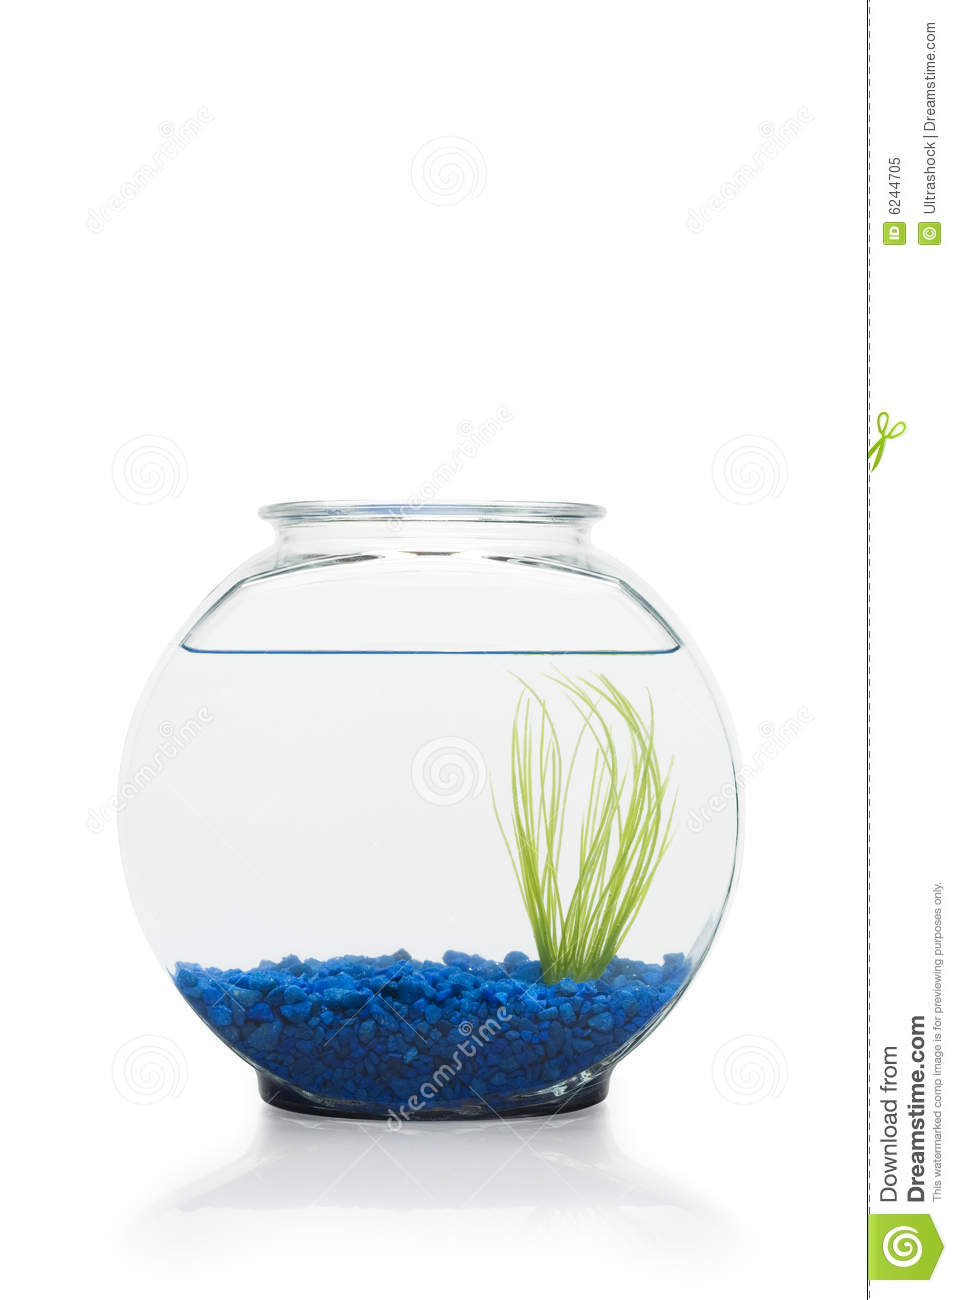 Fish bowl stock image image of blue accessories fish for Fish in a bowl